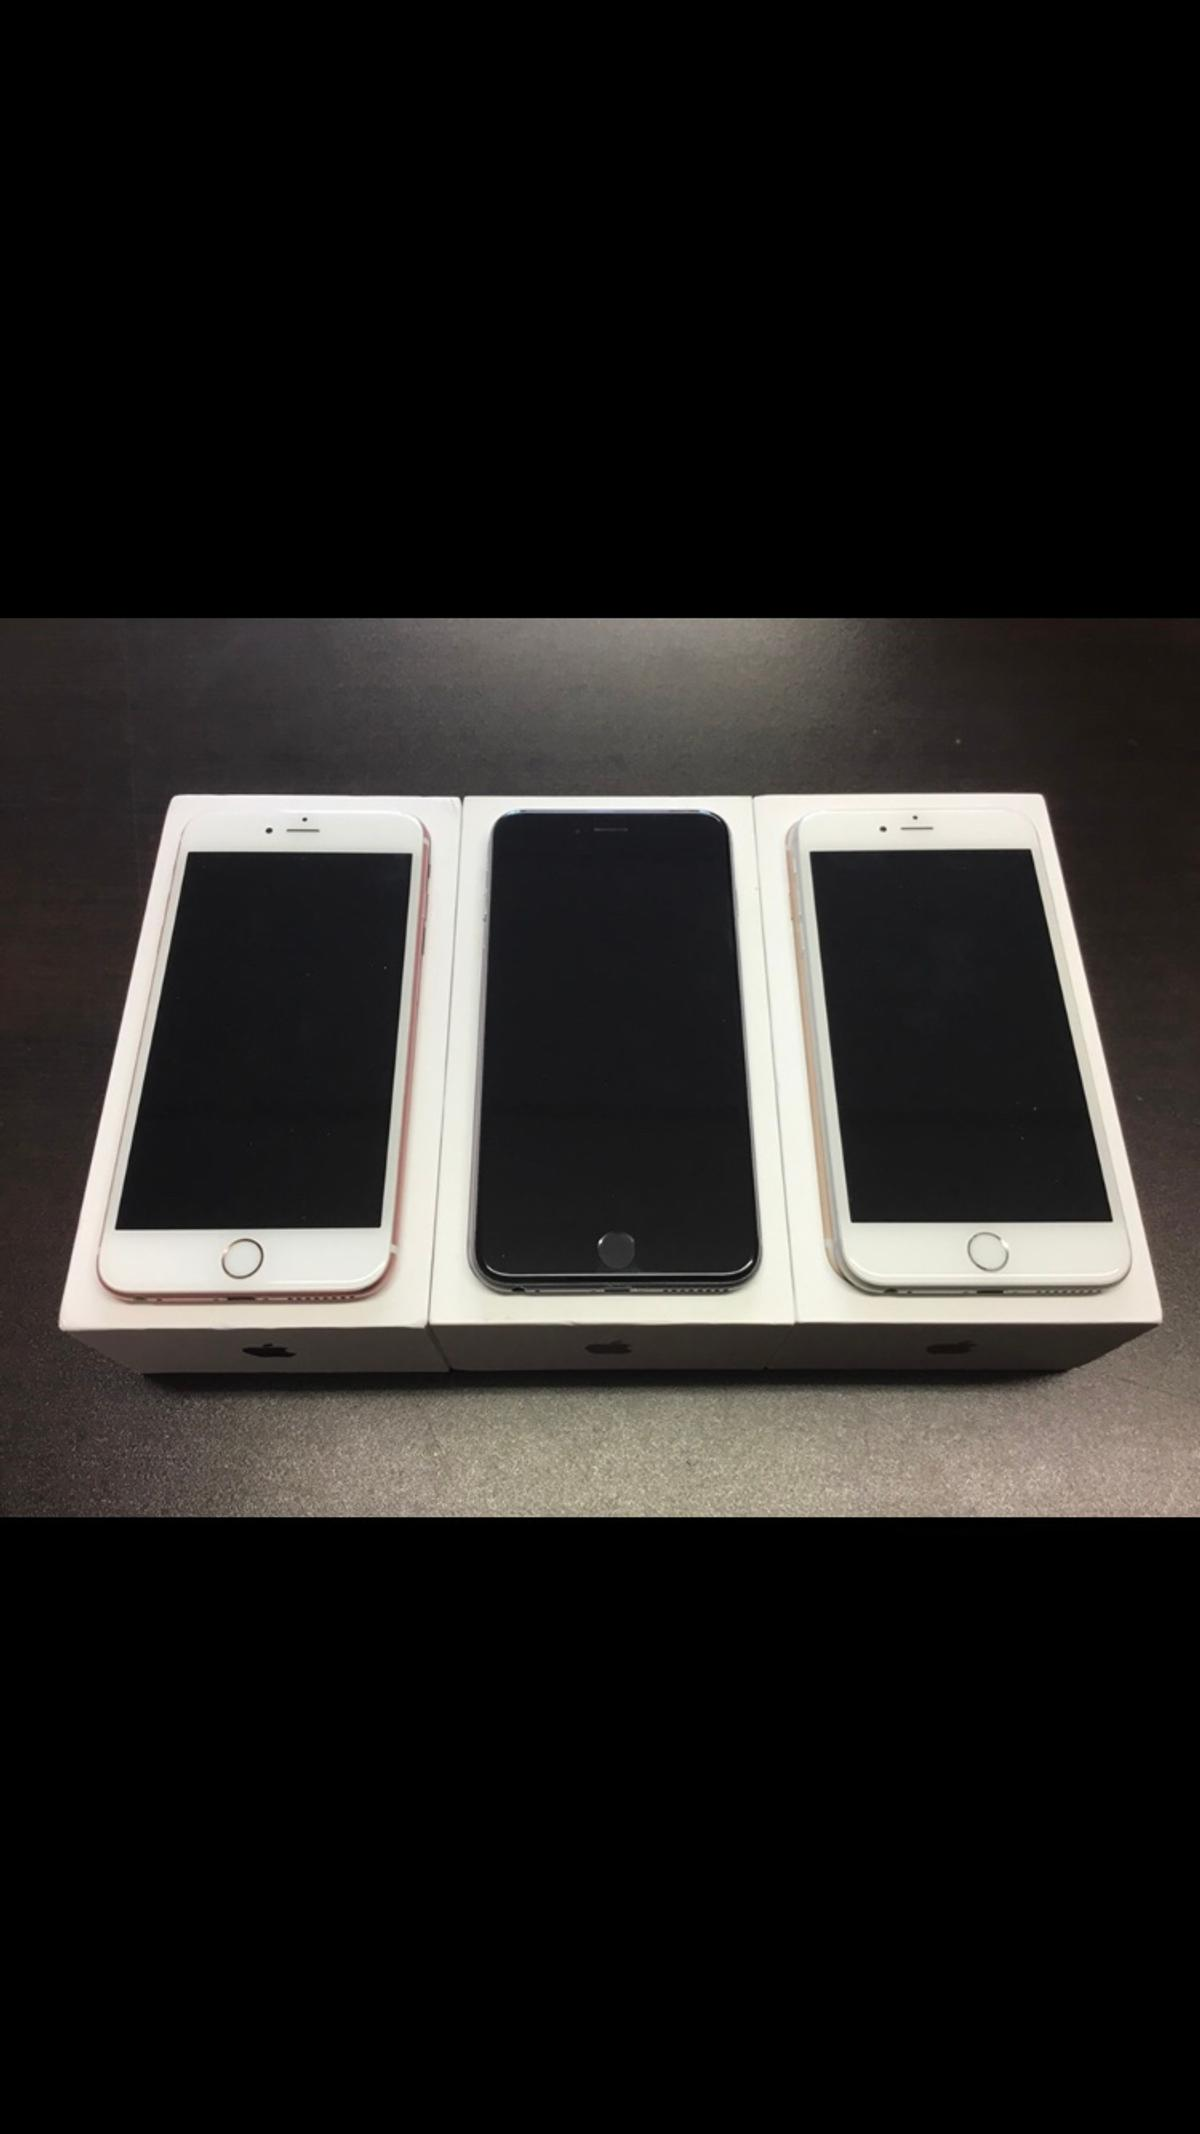 iPhone 6s Plus 32gb Unlocked good condition with warranty and accessories  Buy with confidence from a phone shop all our phones come with warranty and accessories 01217071234 Open Monday to Saturday 11am till 5pm Out off hours collection can be arranged please call or text 07944 818181  Fone Squad 35 Warwick Road Solihull B92 7HS If using sat nav only use post code not the door number All major debt and credit cards accepted Collection only  iPhone screen fitted while you wait  iPhone 5 5c 5s se £25 iPhone 6 £30 iPhone 6 Plus £40 iPhone 6s £40 iPhone 6s Plus £50 iPhone 7 or 7 Plus £50 iPhone 8 or 8 Plus £50